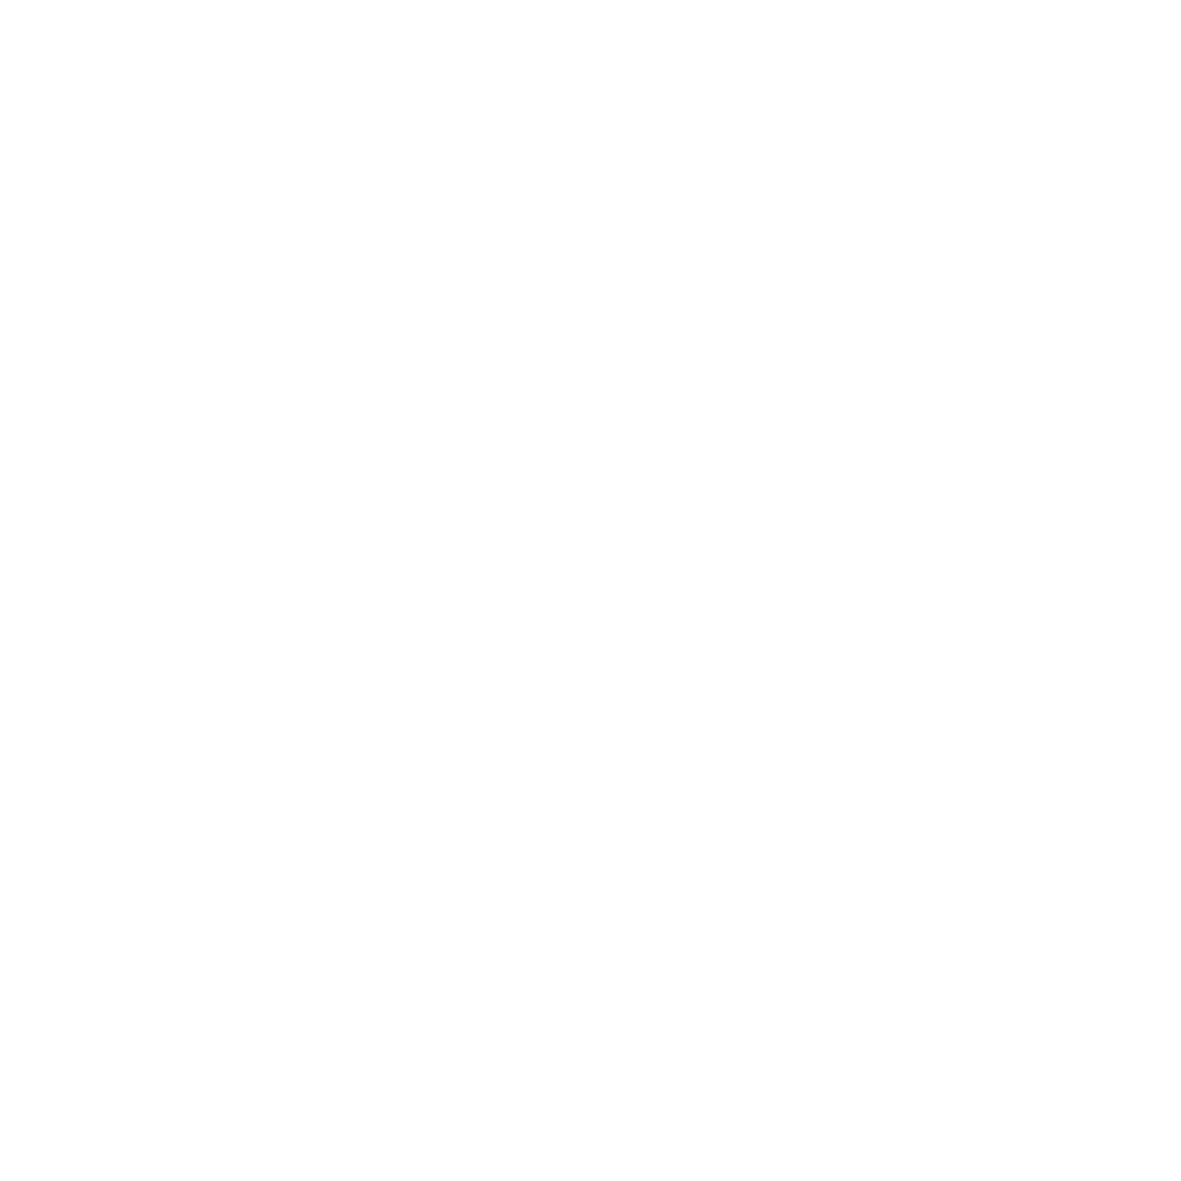 Sojo Kitchen